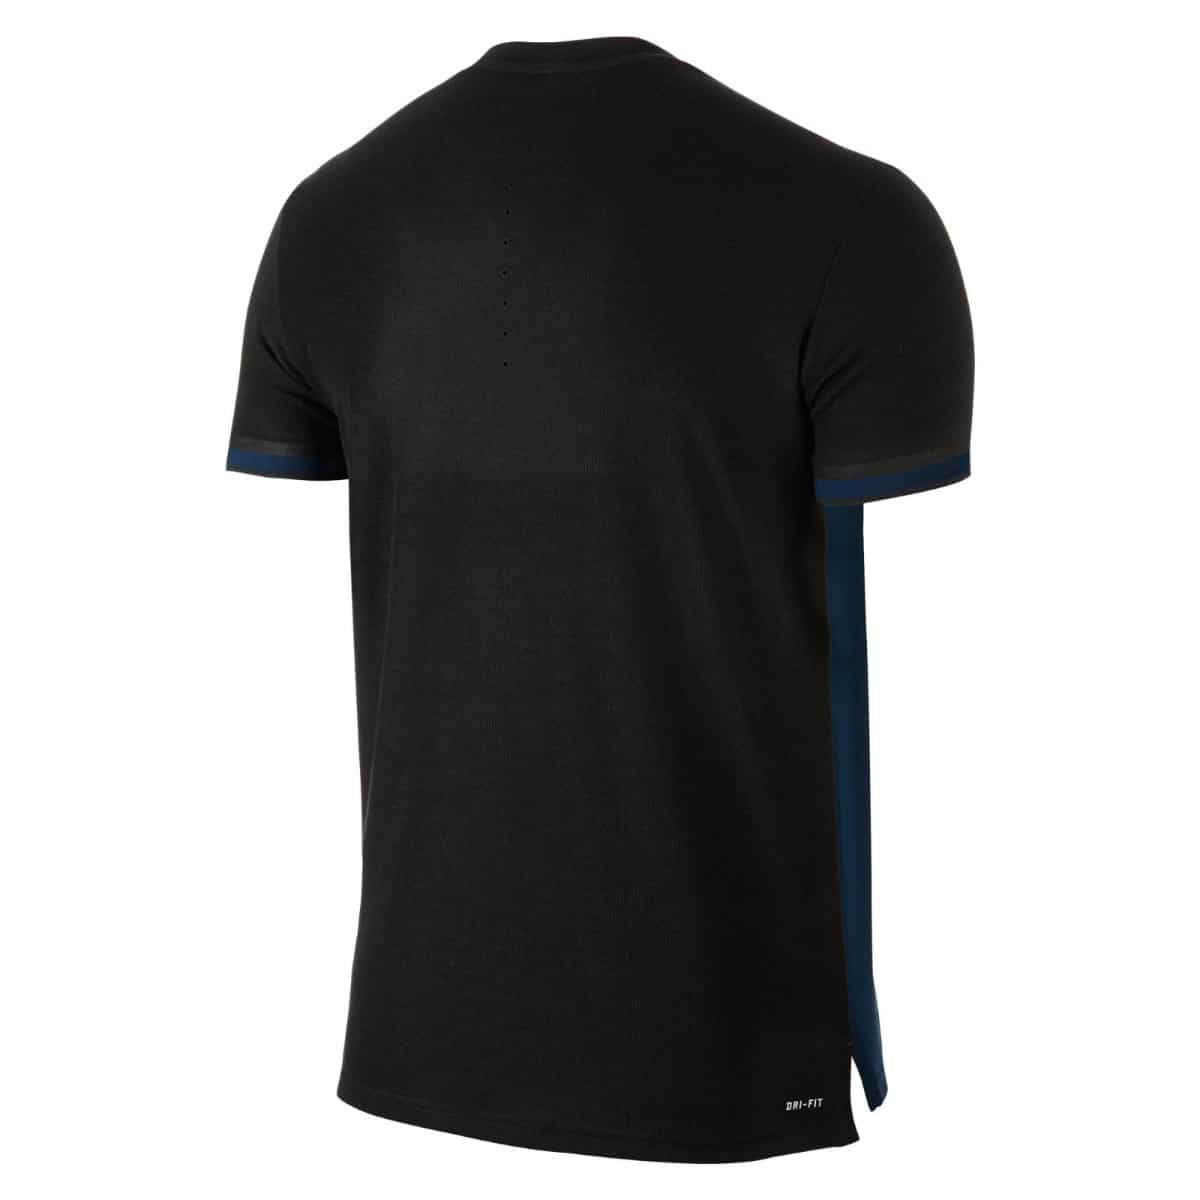 4b12da1e Roger Federer's Outfit for the World Tour Finals 2015 - peRFect Tennis